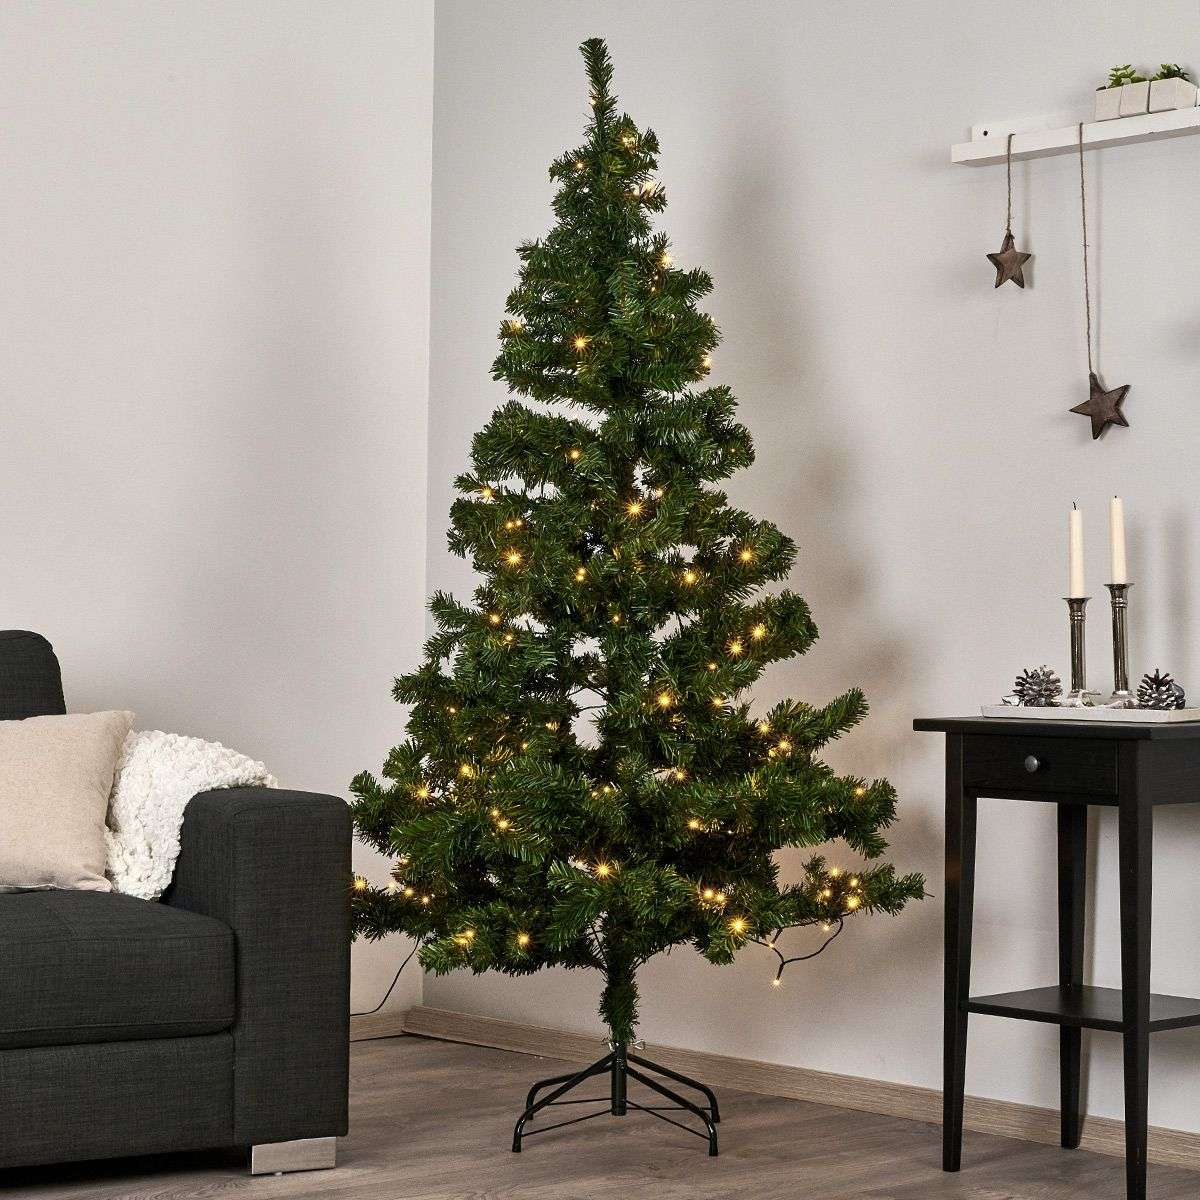 LED kerstboom 180 cm, 180 LED-1522054-31